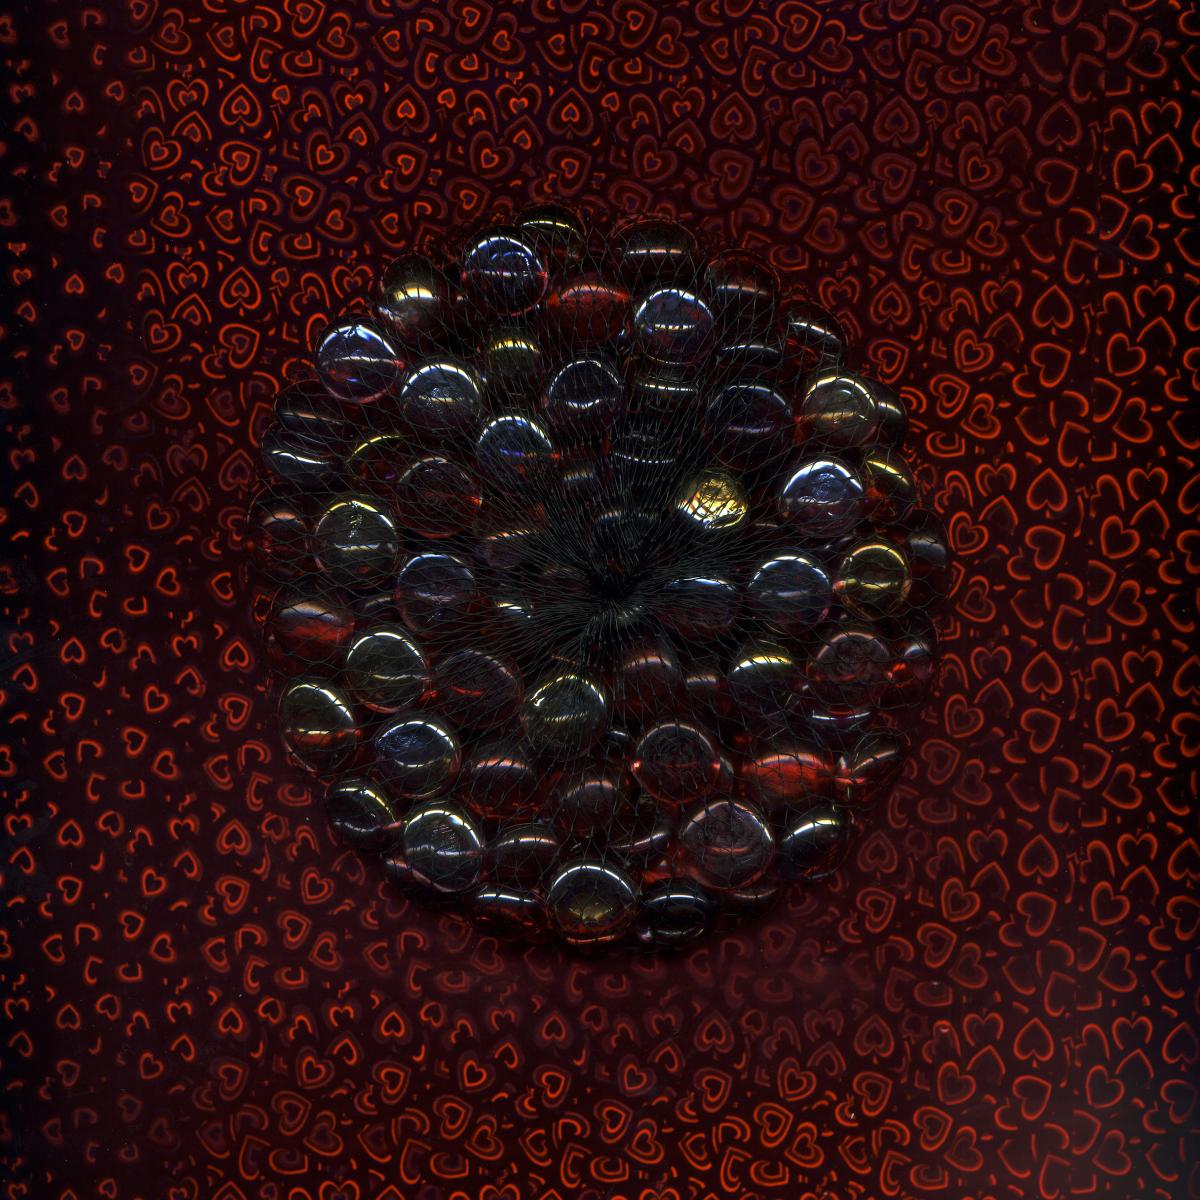 Photograph of dark glass beads forming a sphere on a dark red textured background.